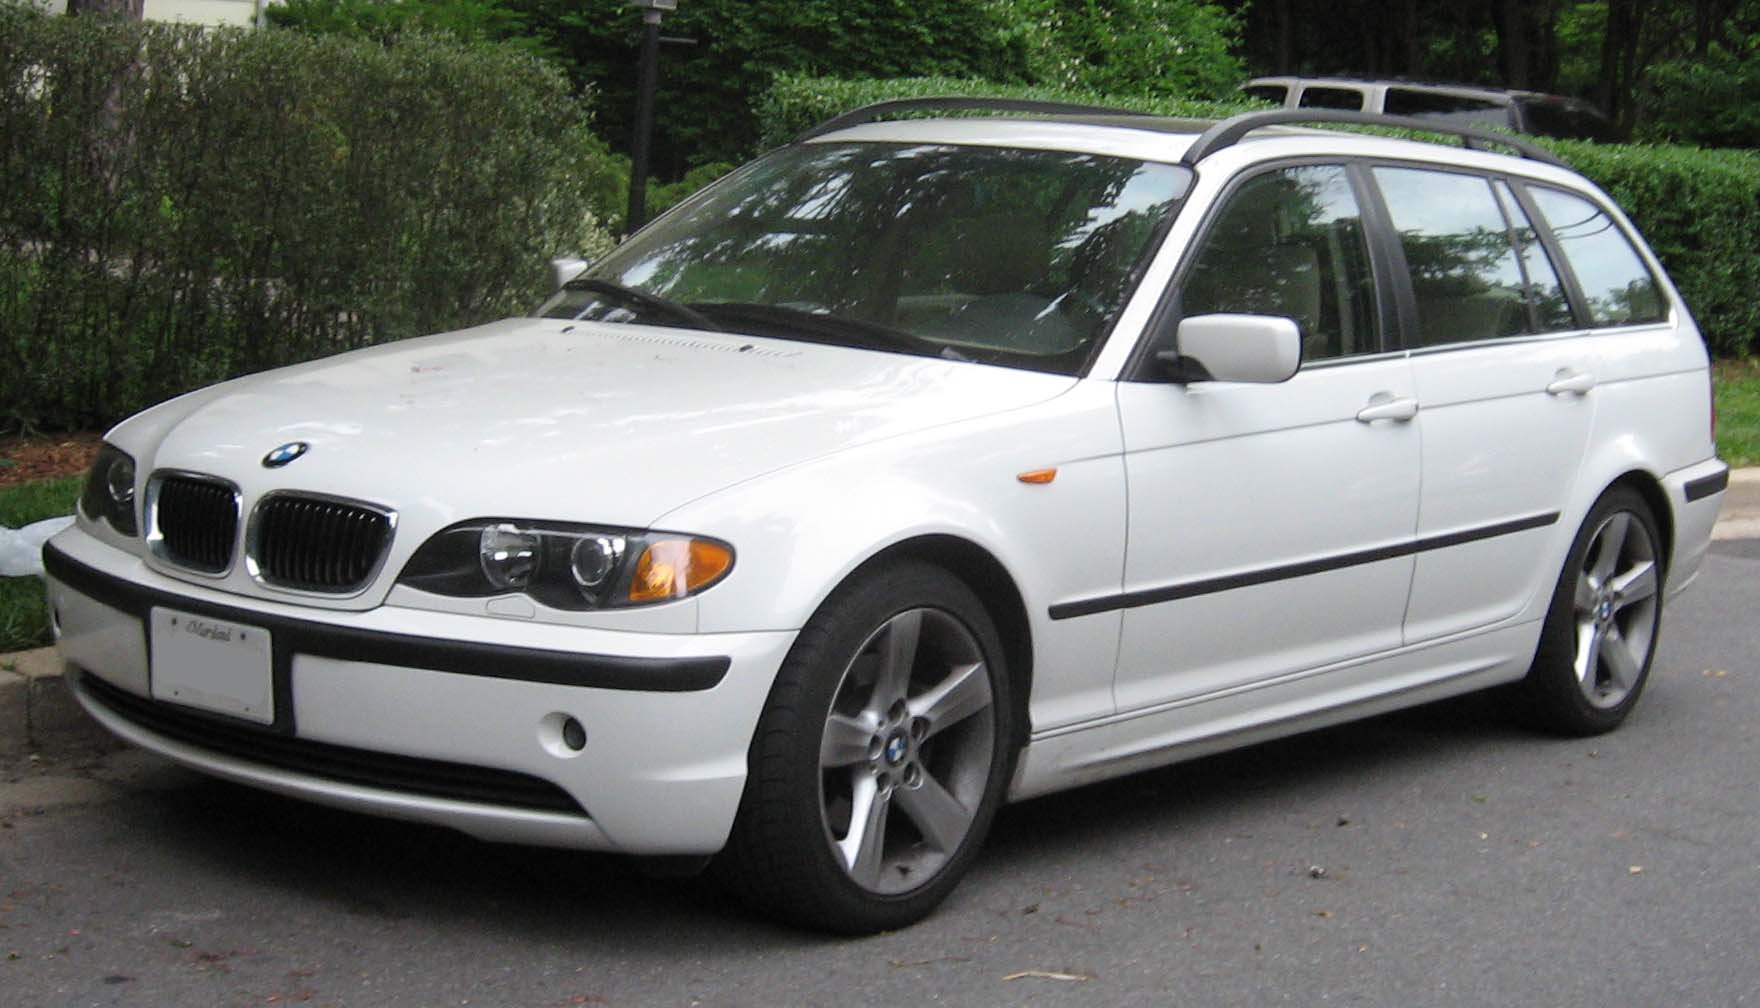 ファイル Bmw E46 Wagon Jpg Wikipedia